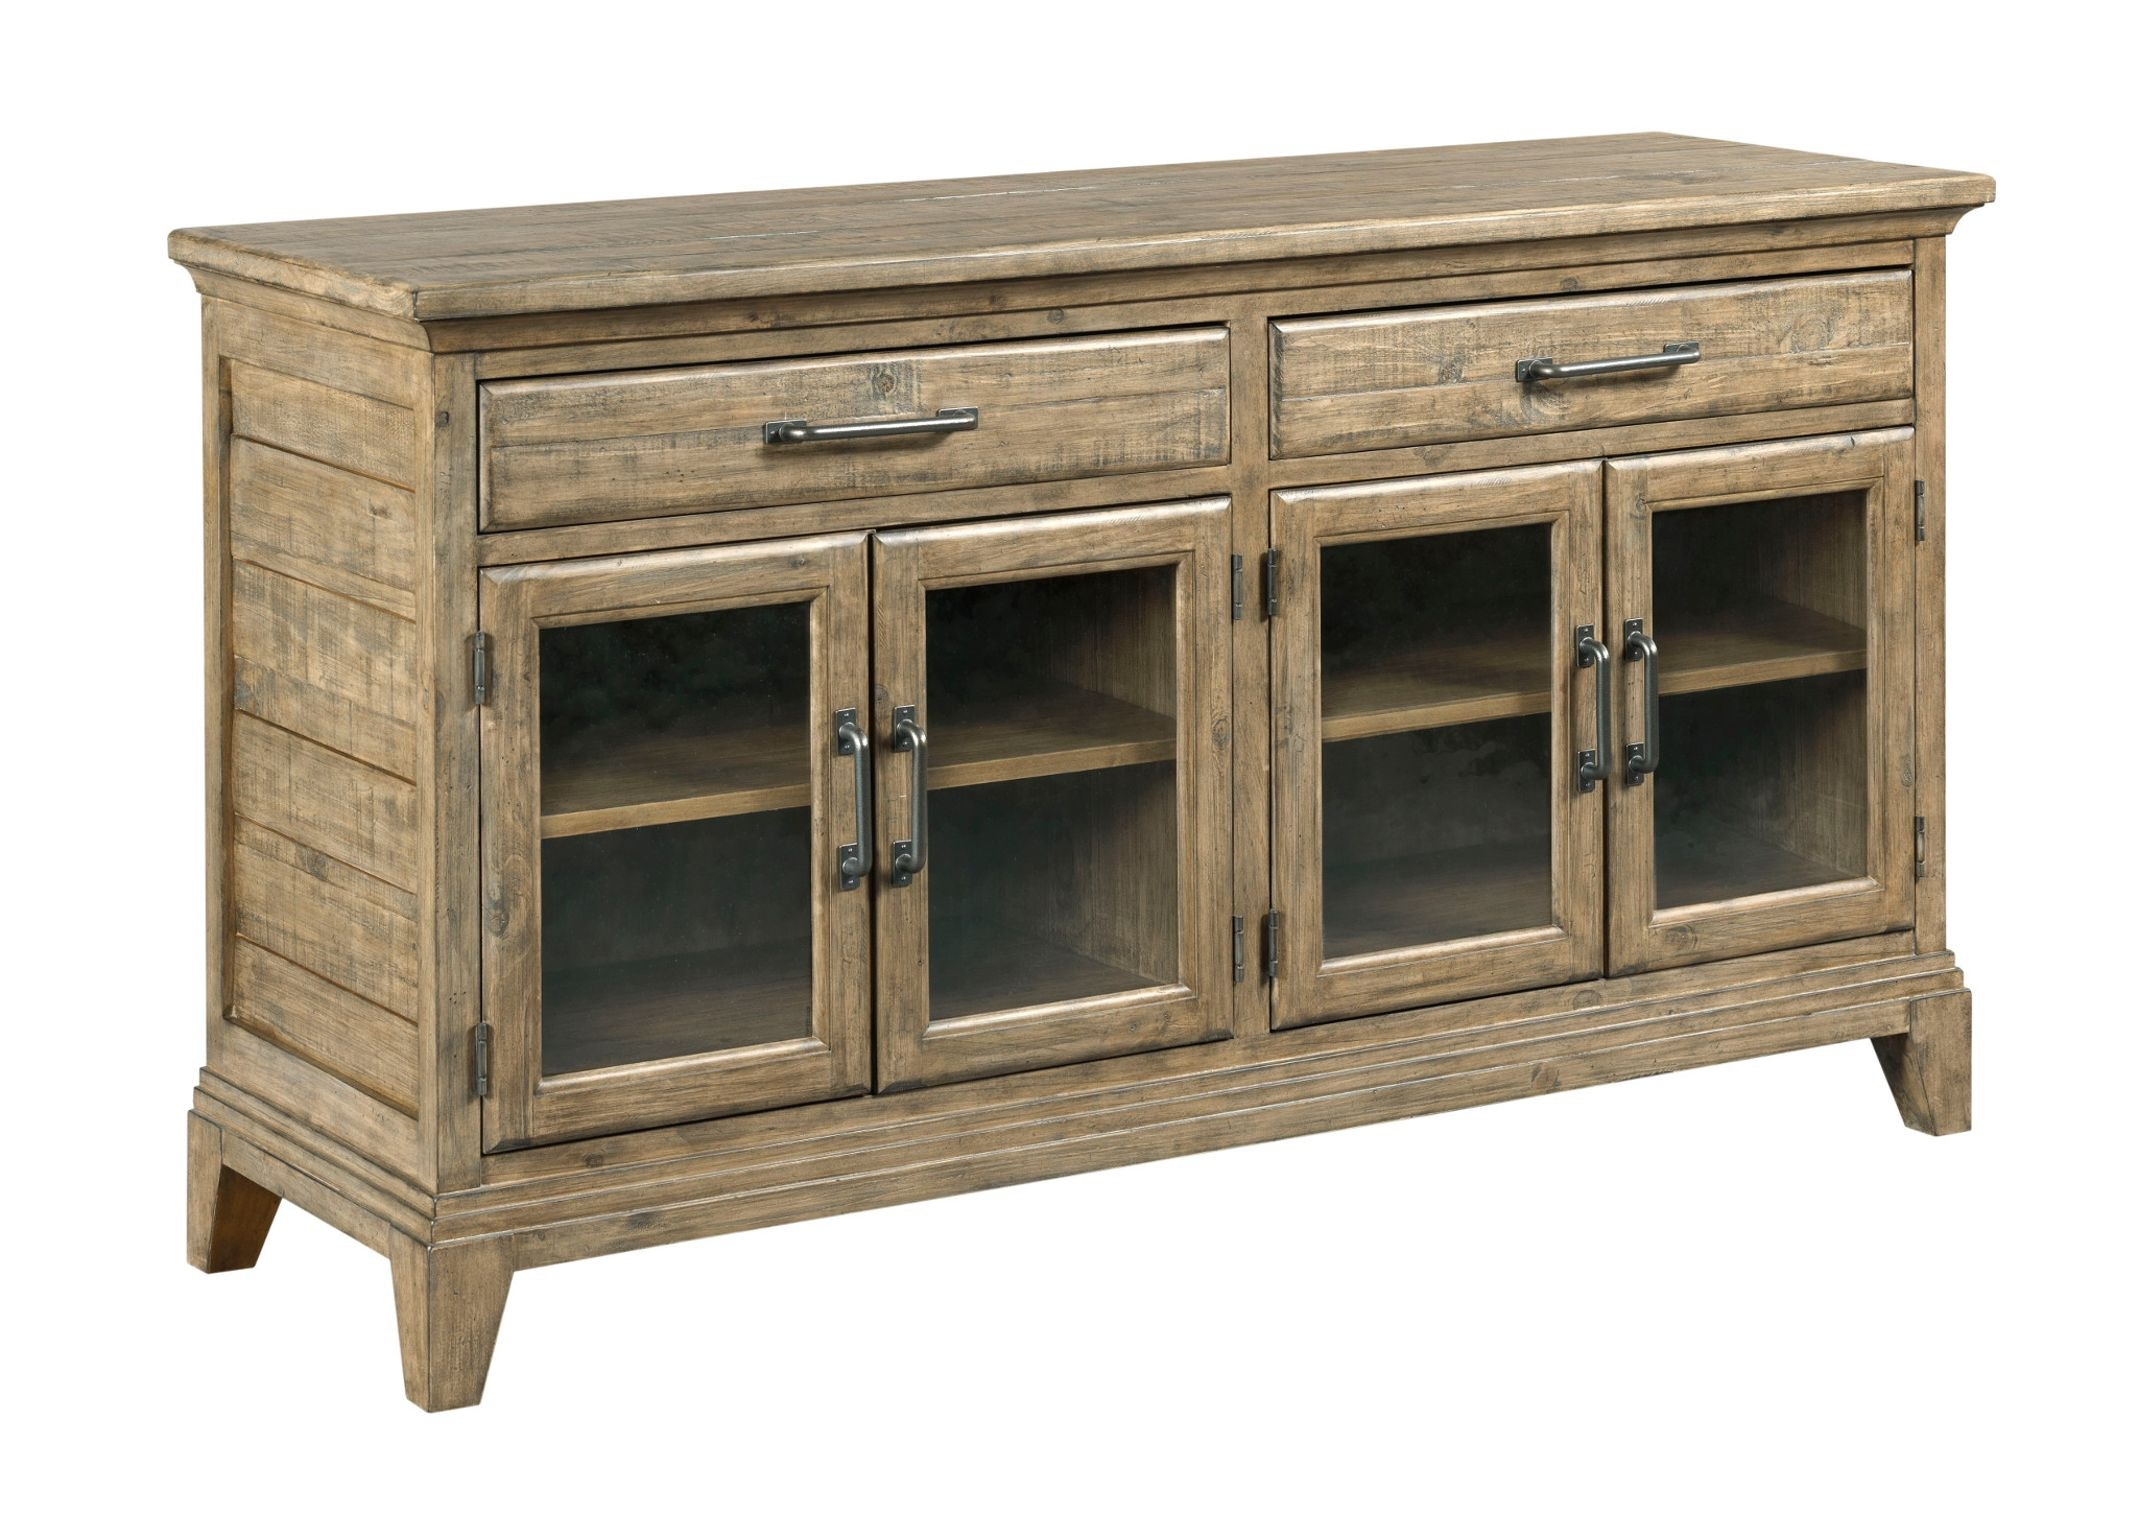 Kincaid Furniture Dining Room Rockland Buffet 706 857S At New Ulm Furniture  Co.